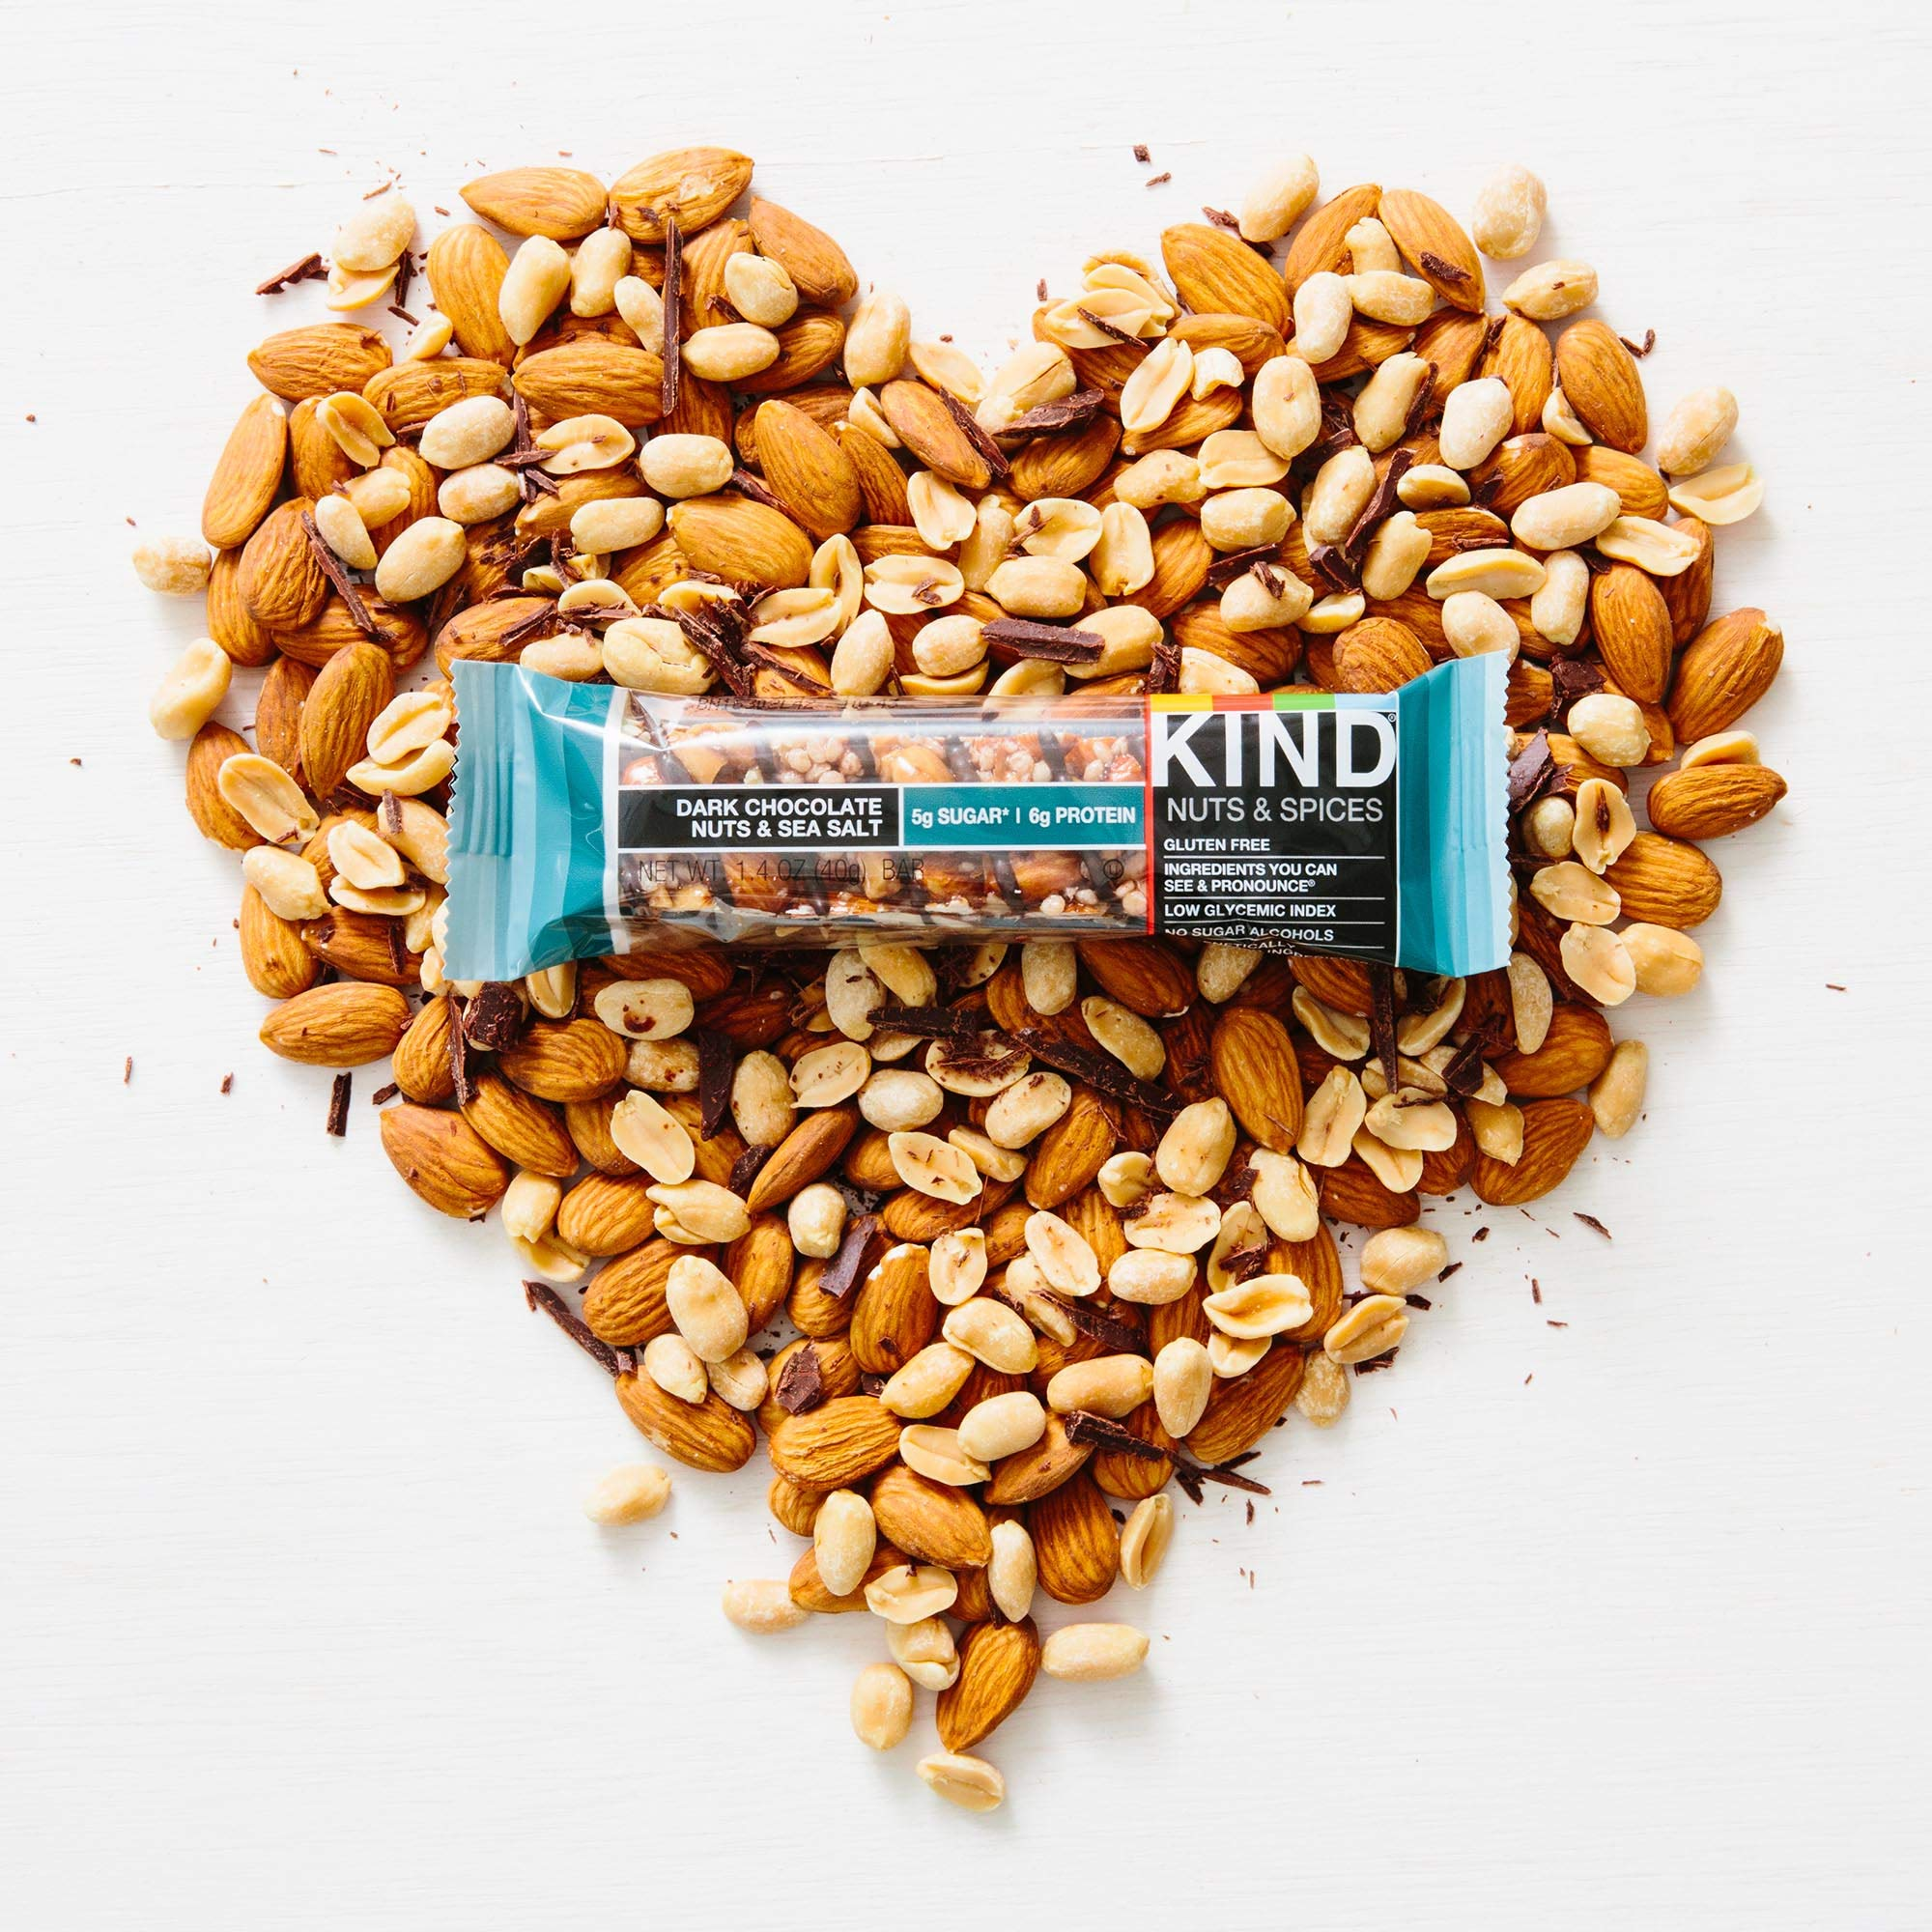 KIND Bars, Dark Chocolate Nuts & Sea Salt, Gluten Free, 1.4 Ounce Bars, 24 Count by KIND (Image #5)